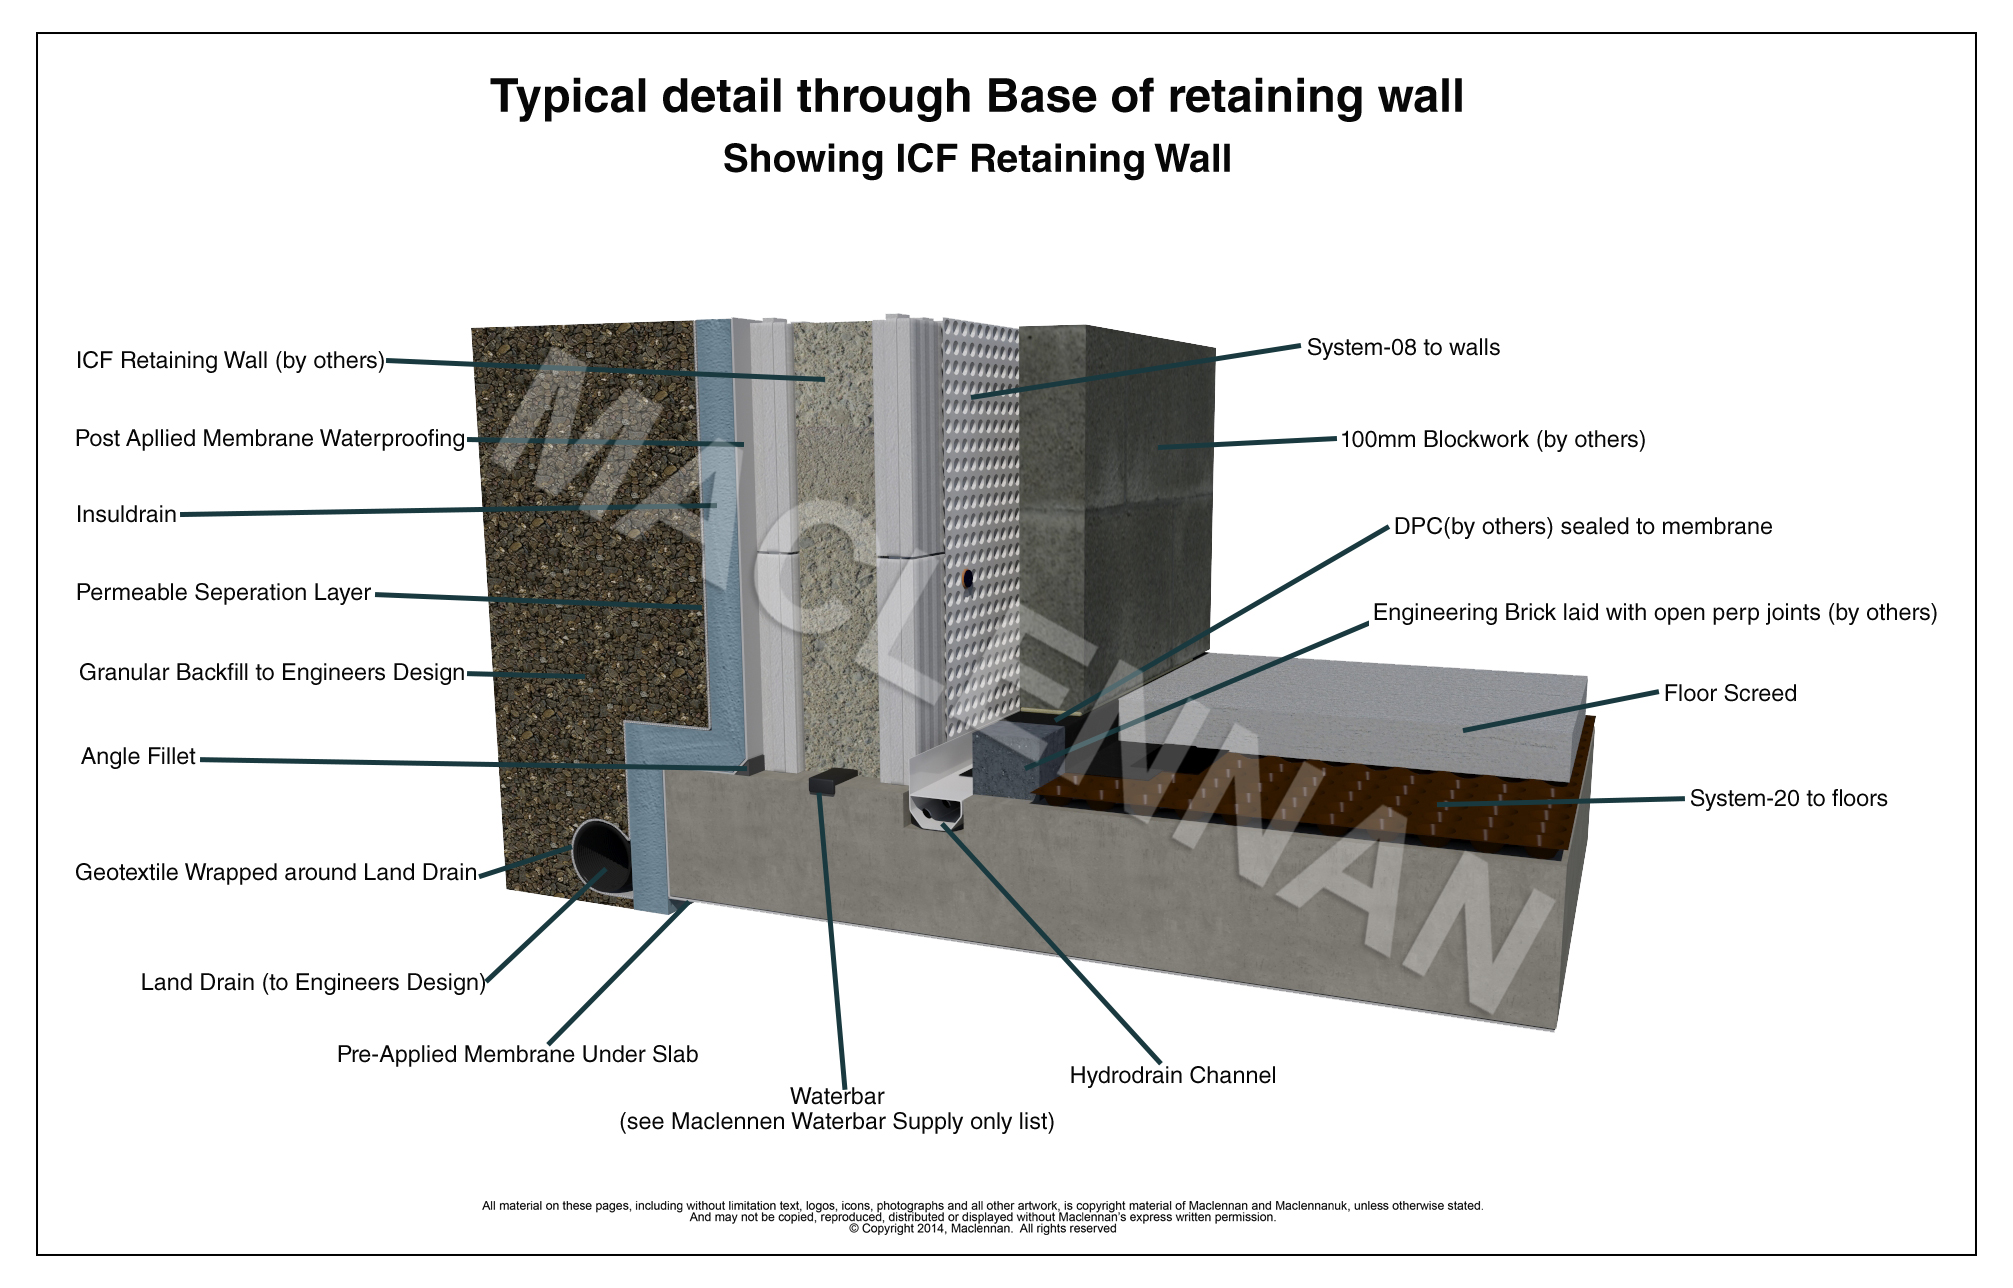 3D Drawings - ICF Construction Head of Retaining Walls